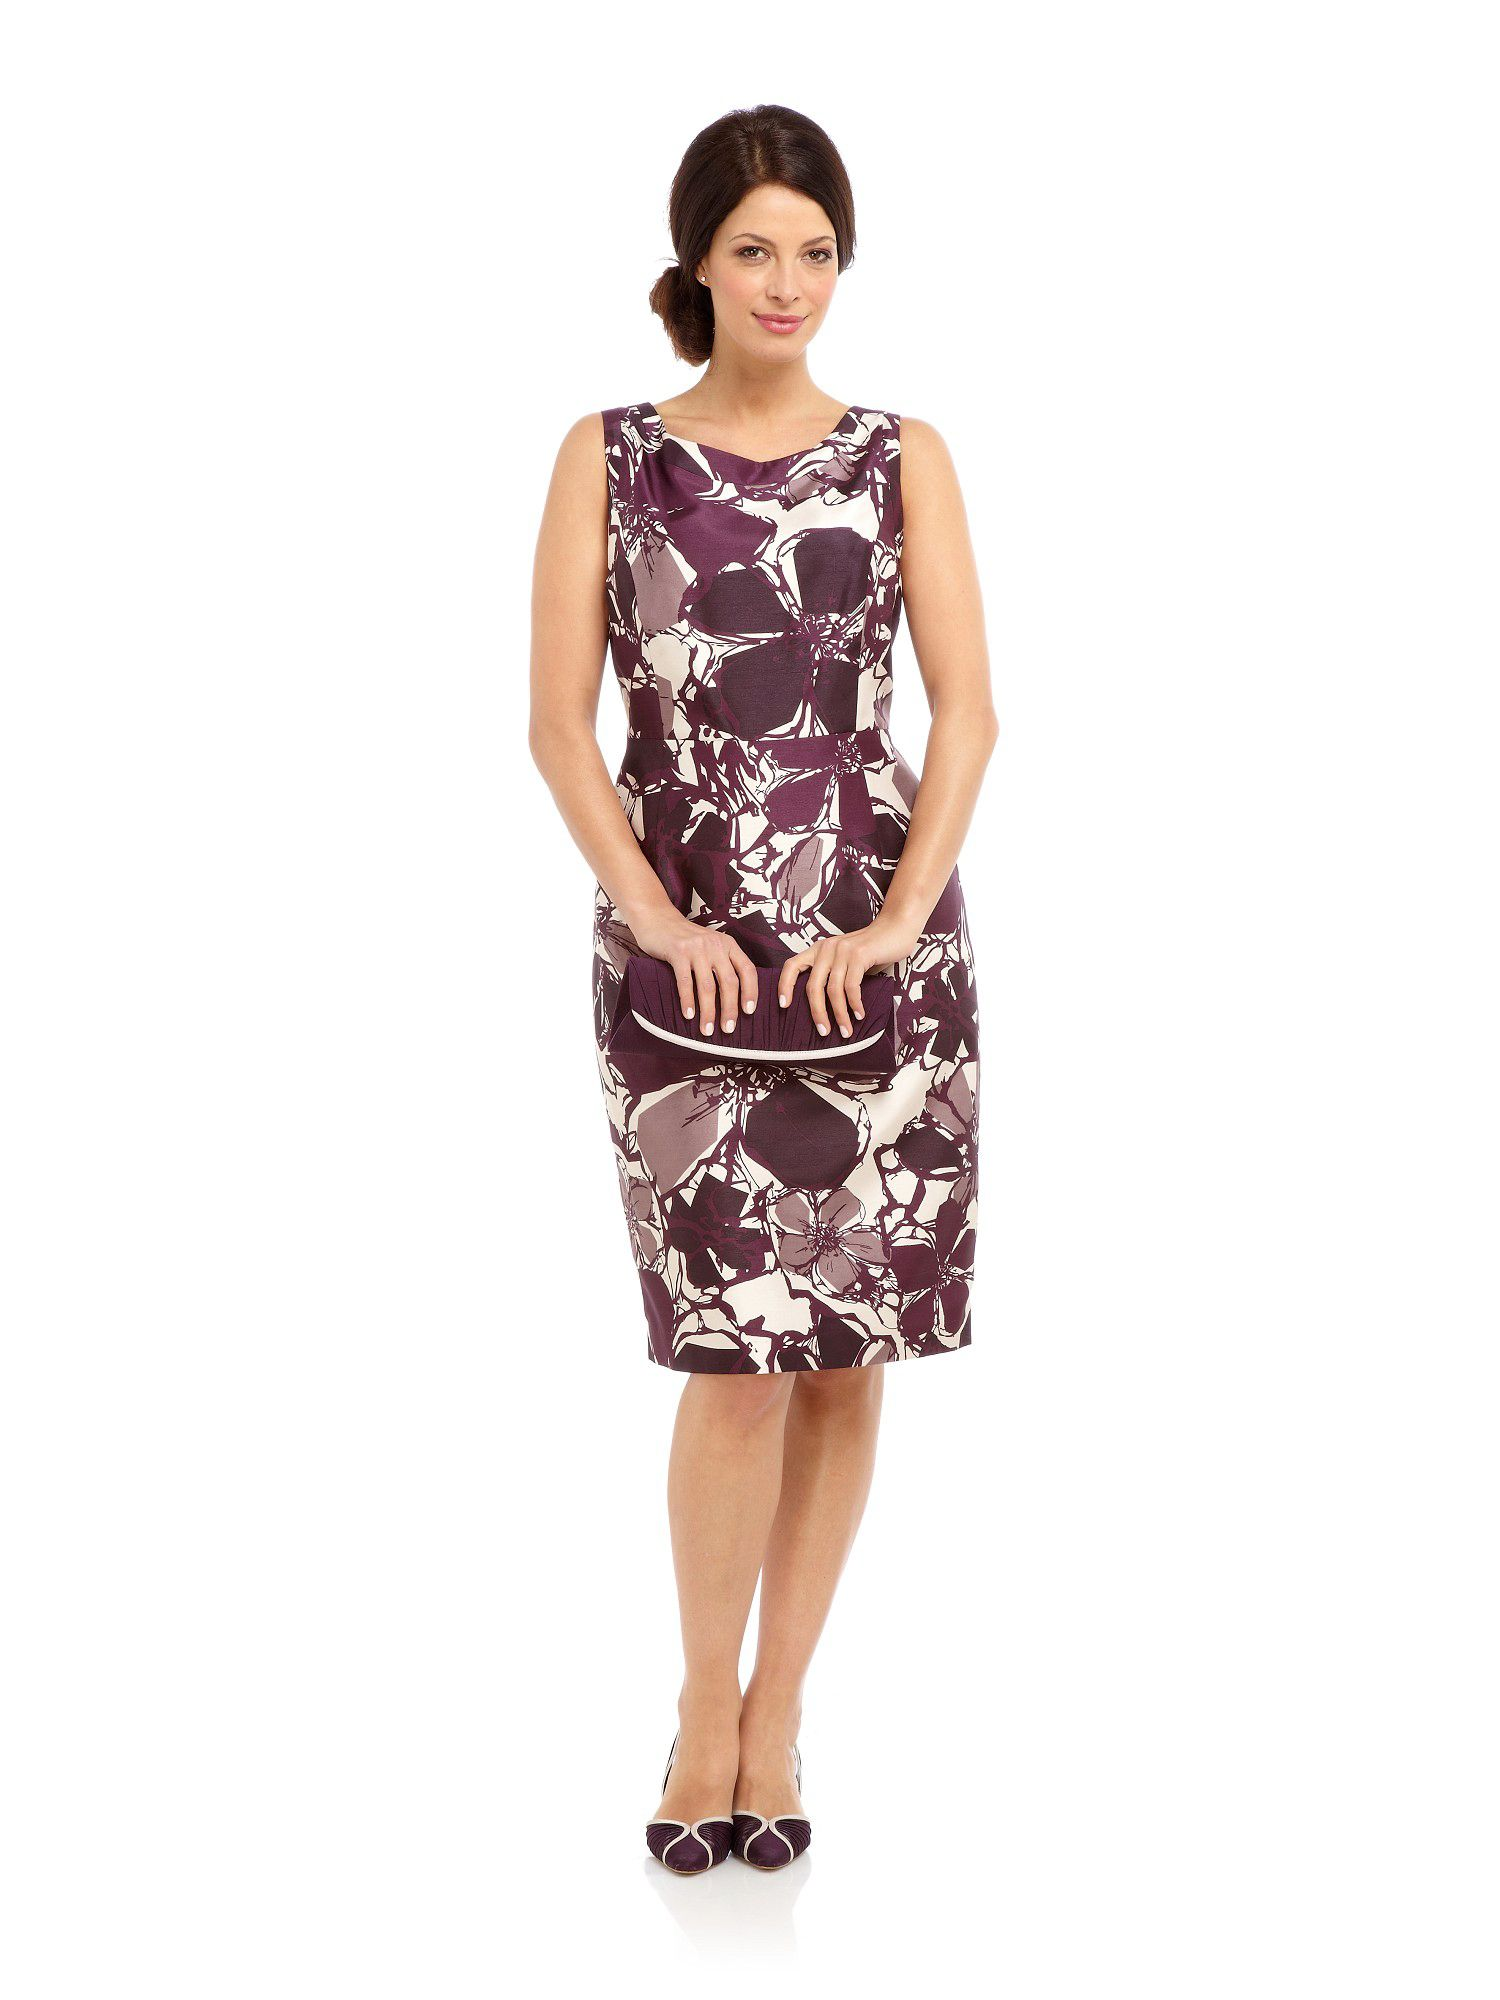 Contemporary floral dress